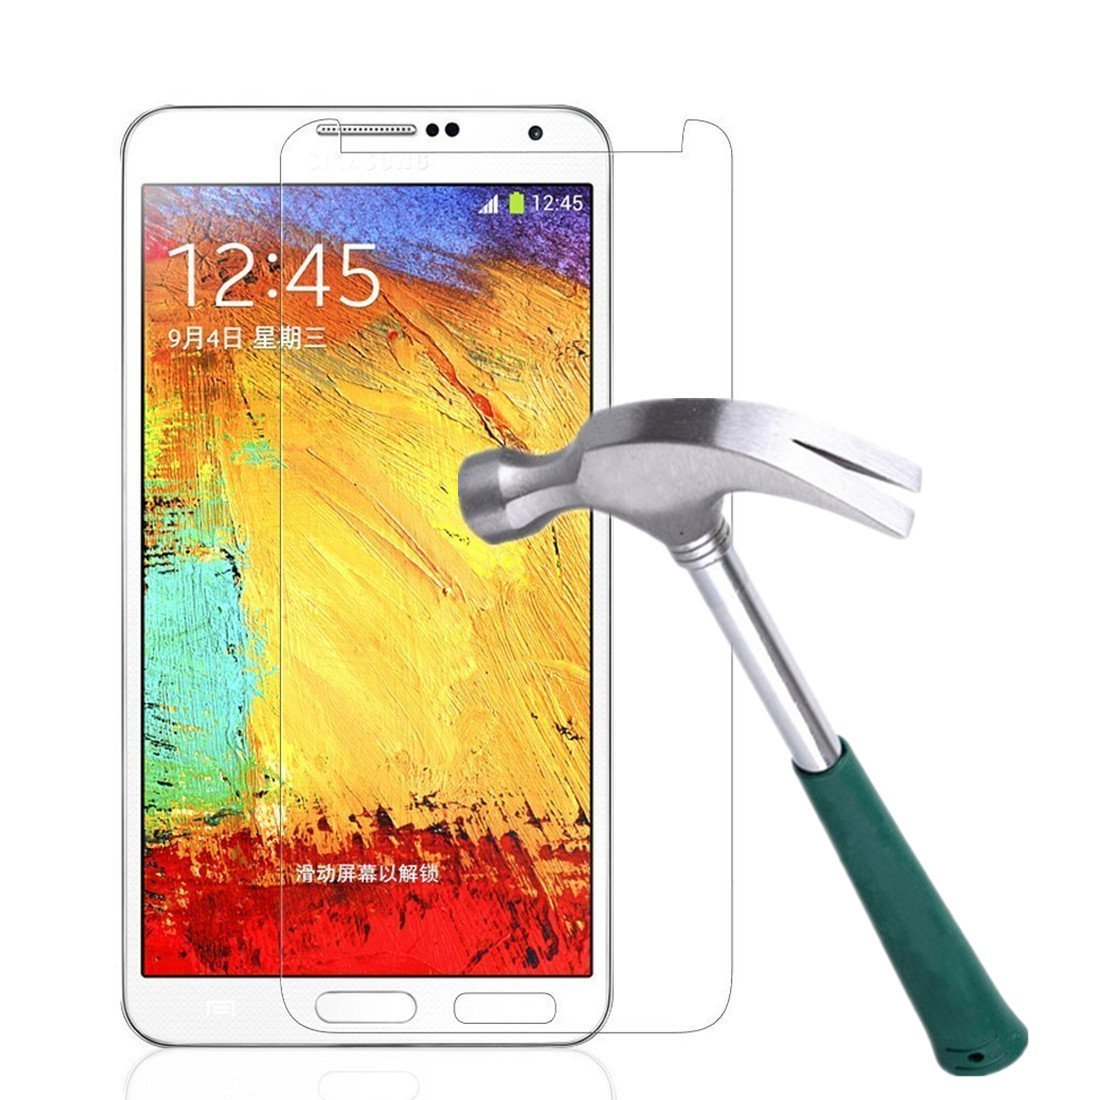 Galaxy Note 3 Screen Protector,TANTEK [Bubble-Free][HD-Clear][Anti-Scratch][Anti-Glare][Anti-Fingerprint] Premium Tempered Glass Screen Protector for Samsung Galaxy Note 3,[Lifetime Warranty]-[1Pack]